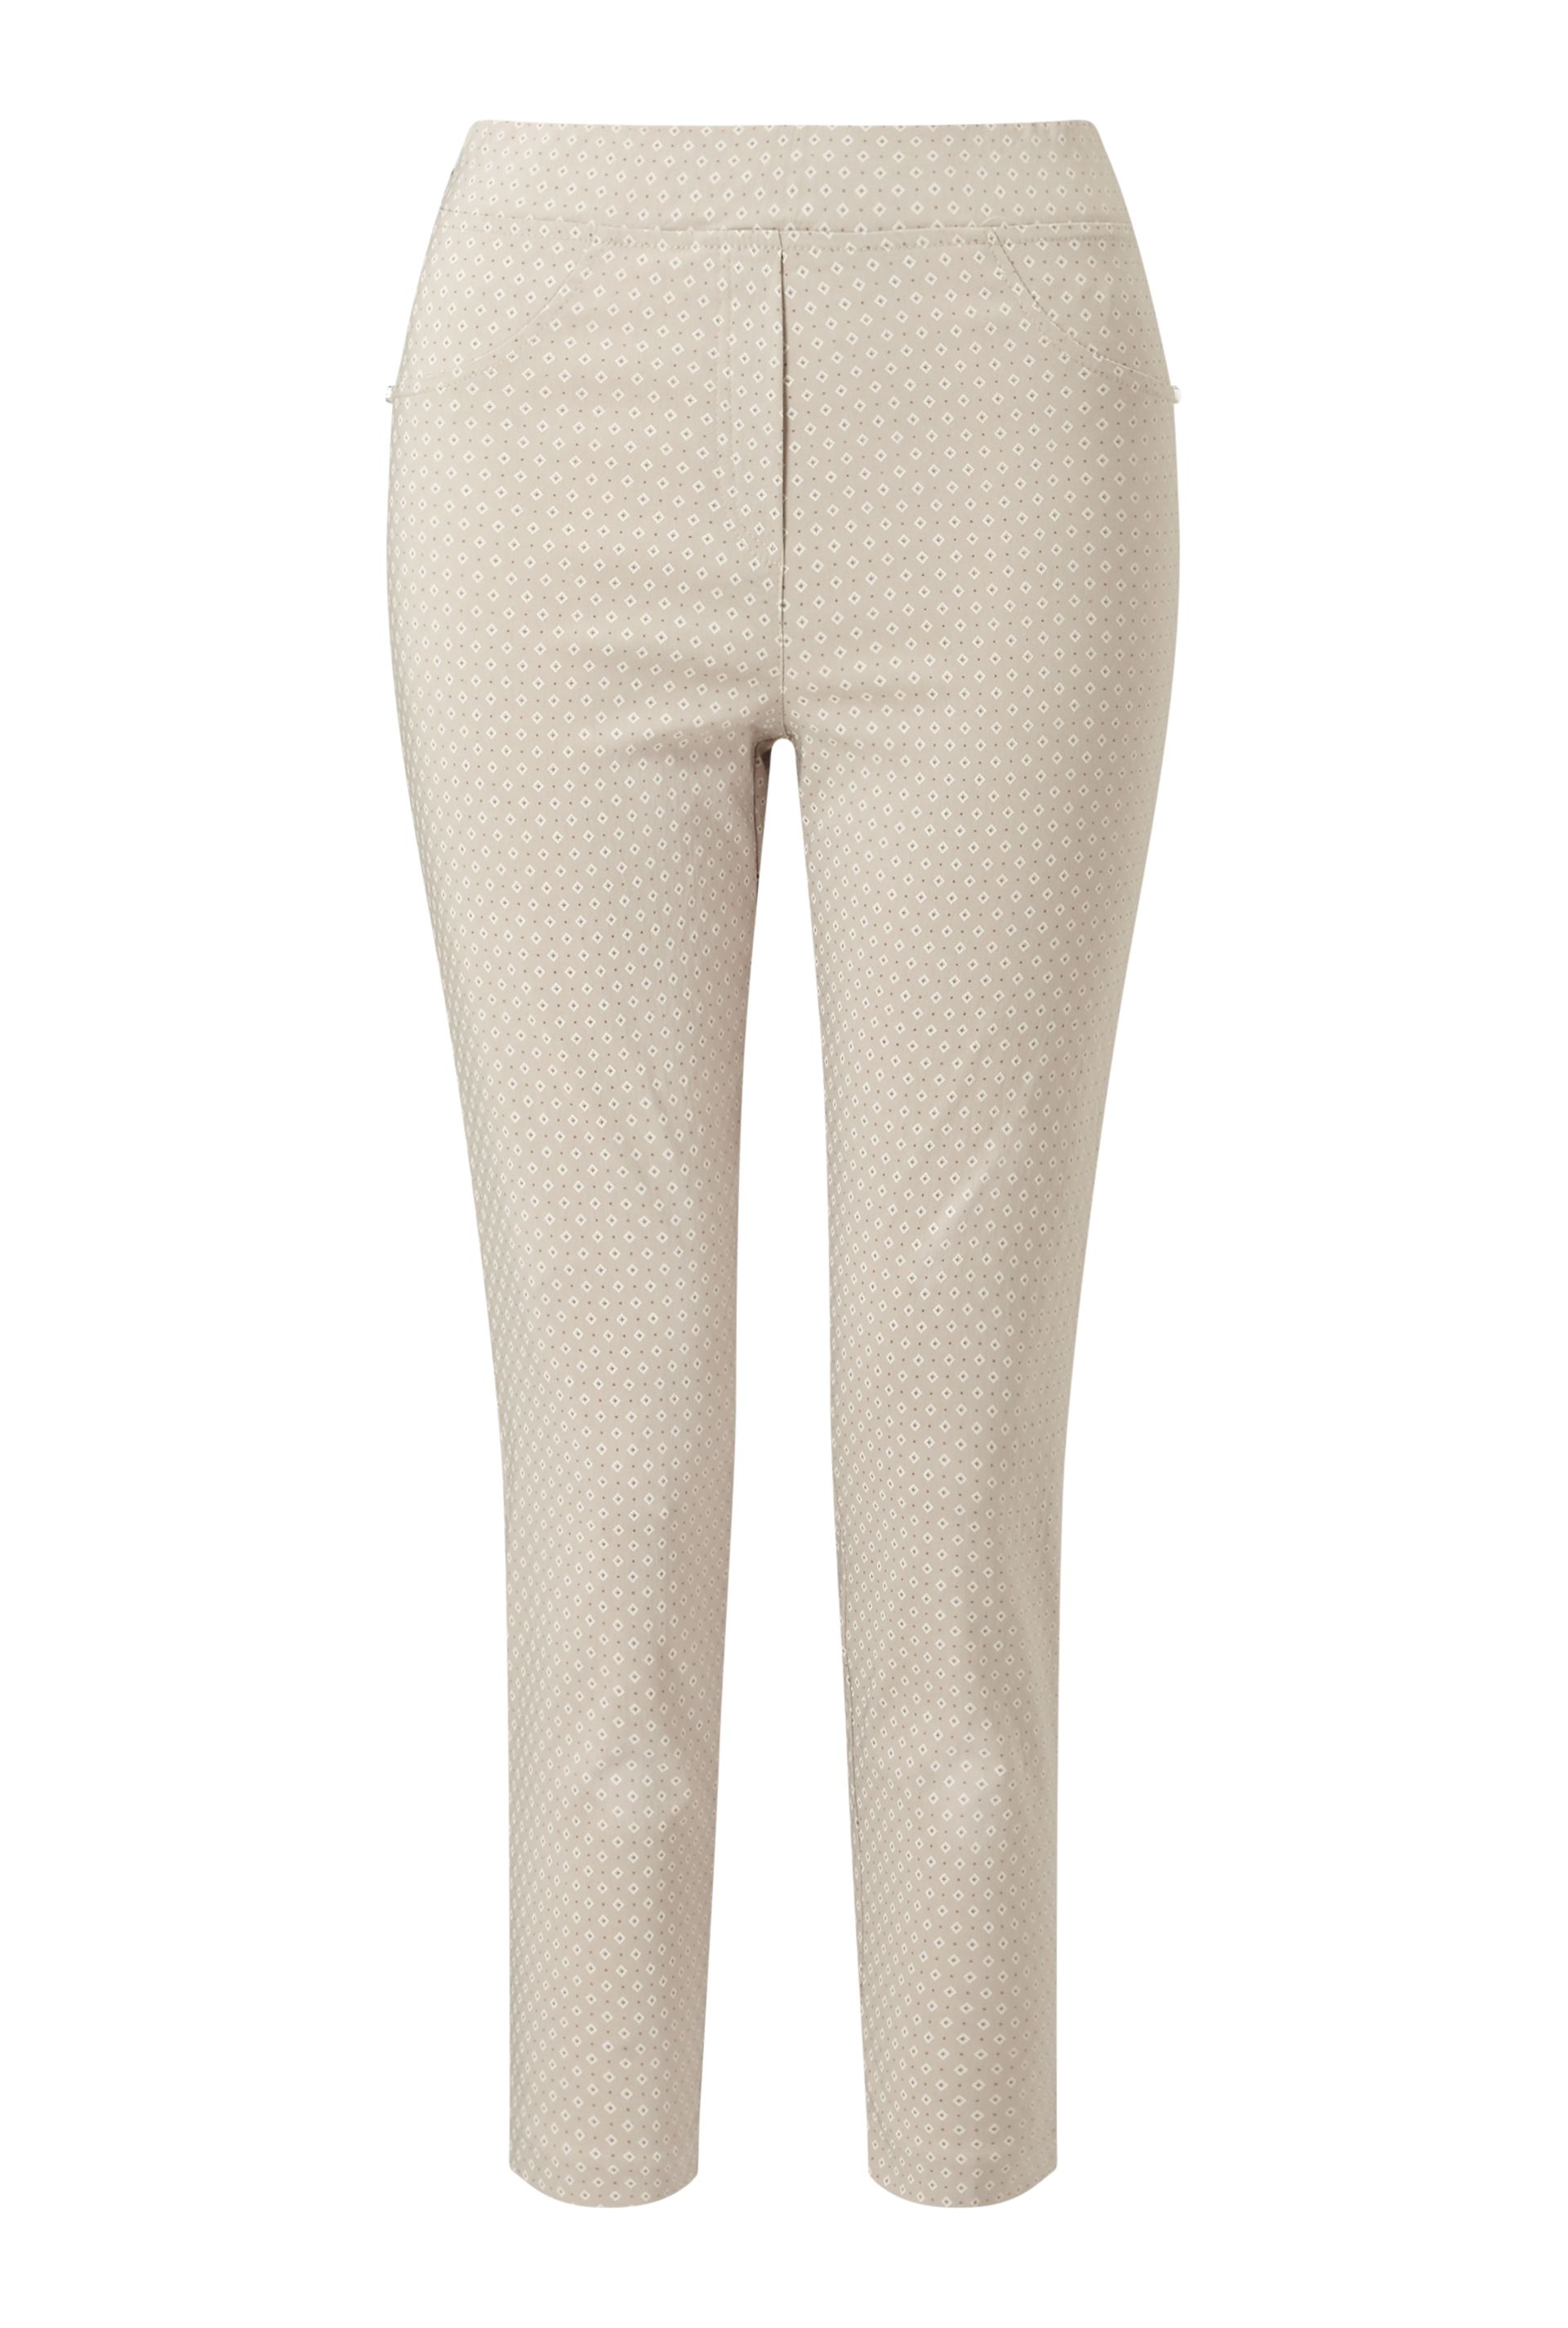 James Lakeland Cropped Patterened Trousers, White